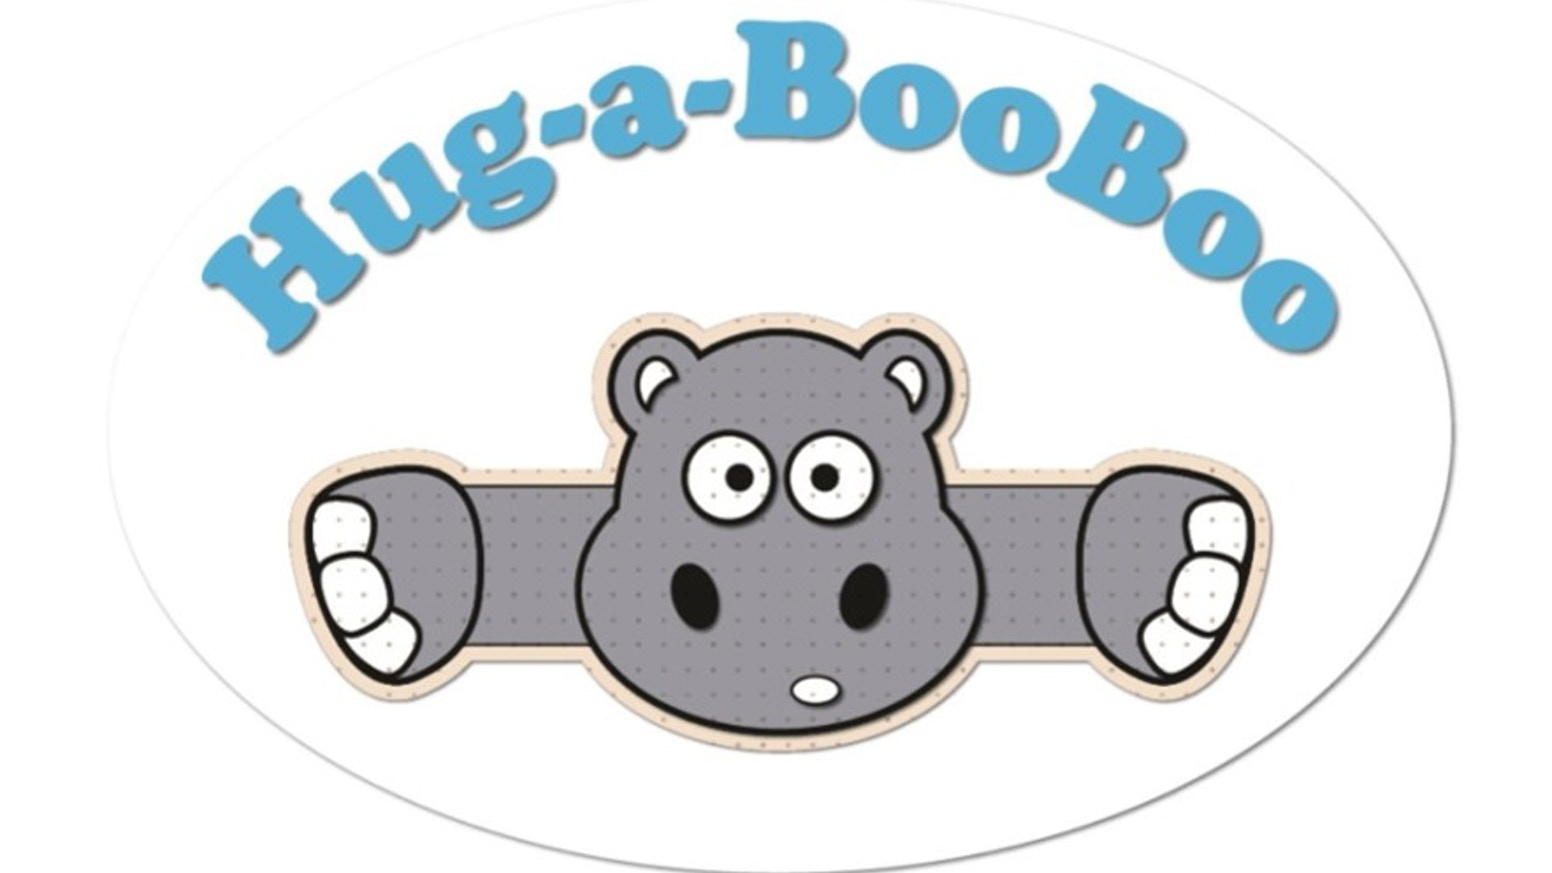 Hug-a-BooBoo by Rob Treglia » Production Run Complete!! And With It ...